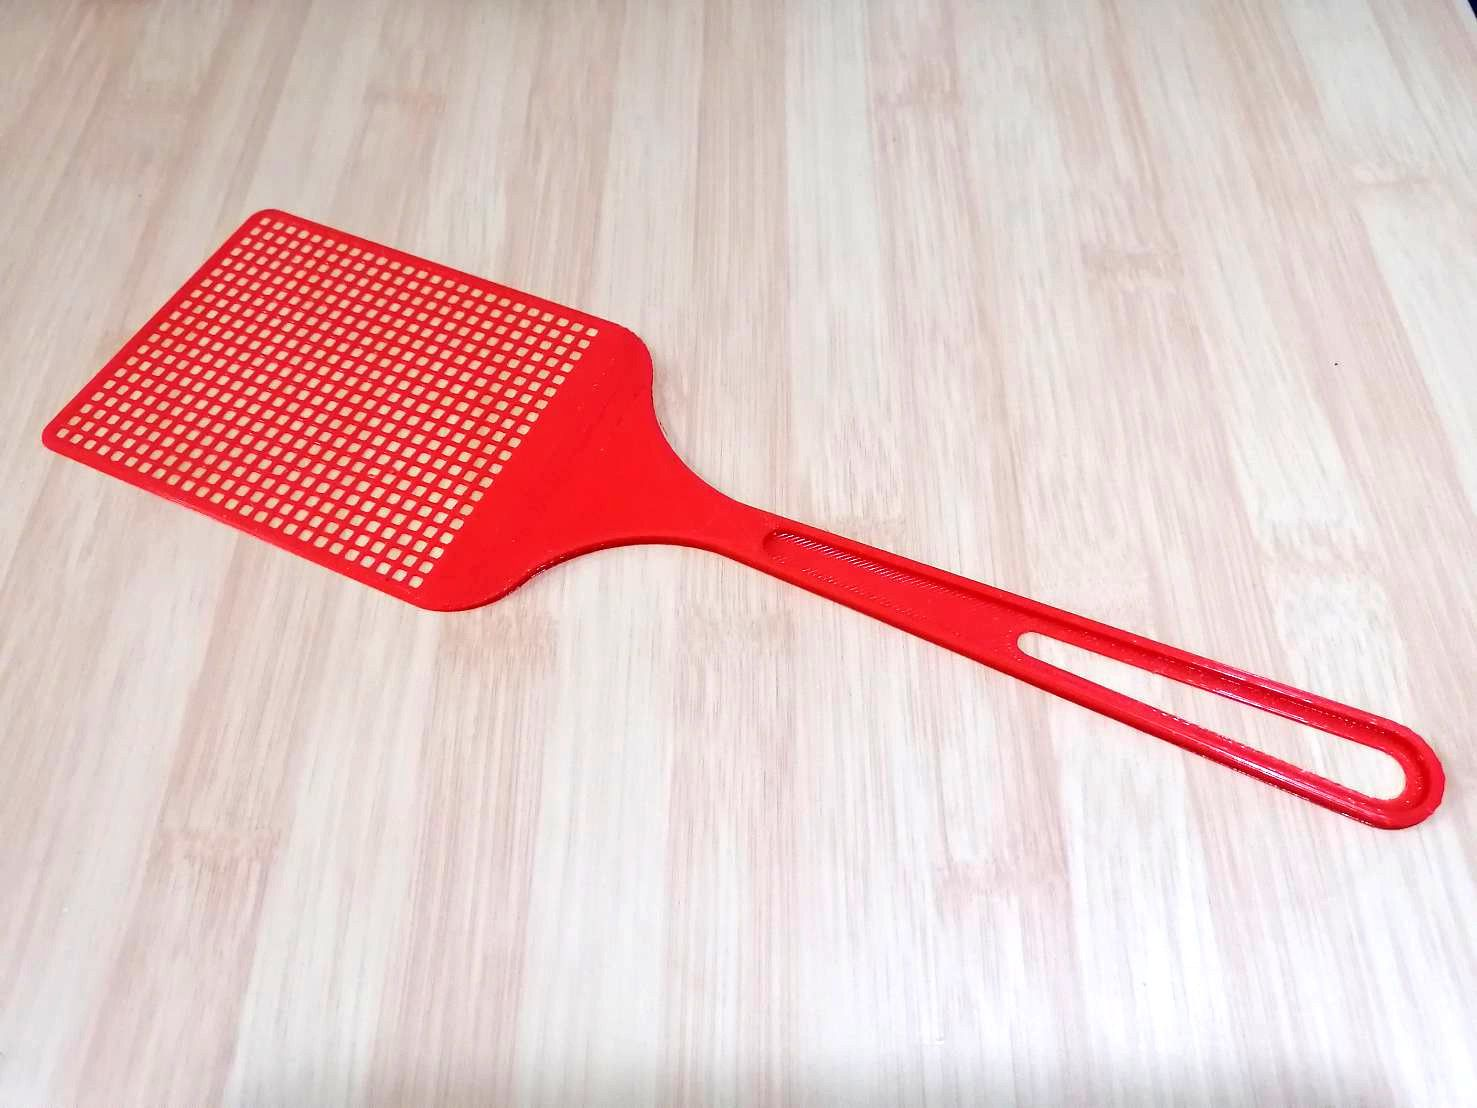 51053.jpg Download free STL file Fly Swatter • 3D printing object, AppliedTechnologyLab